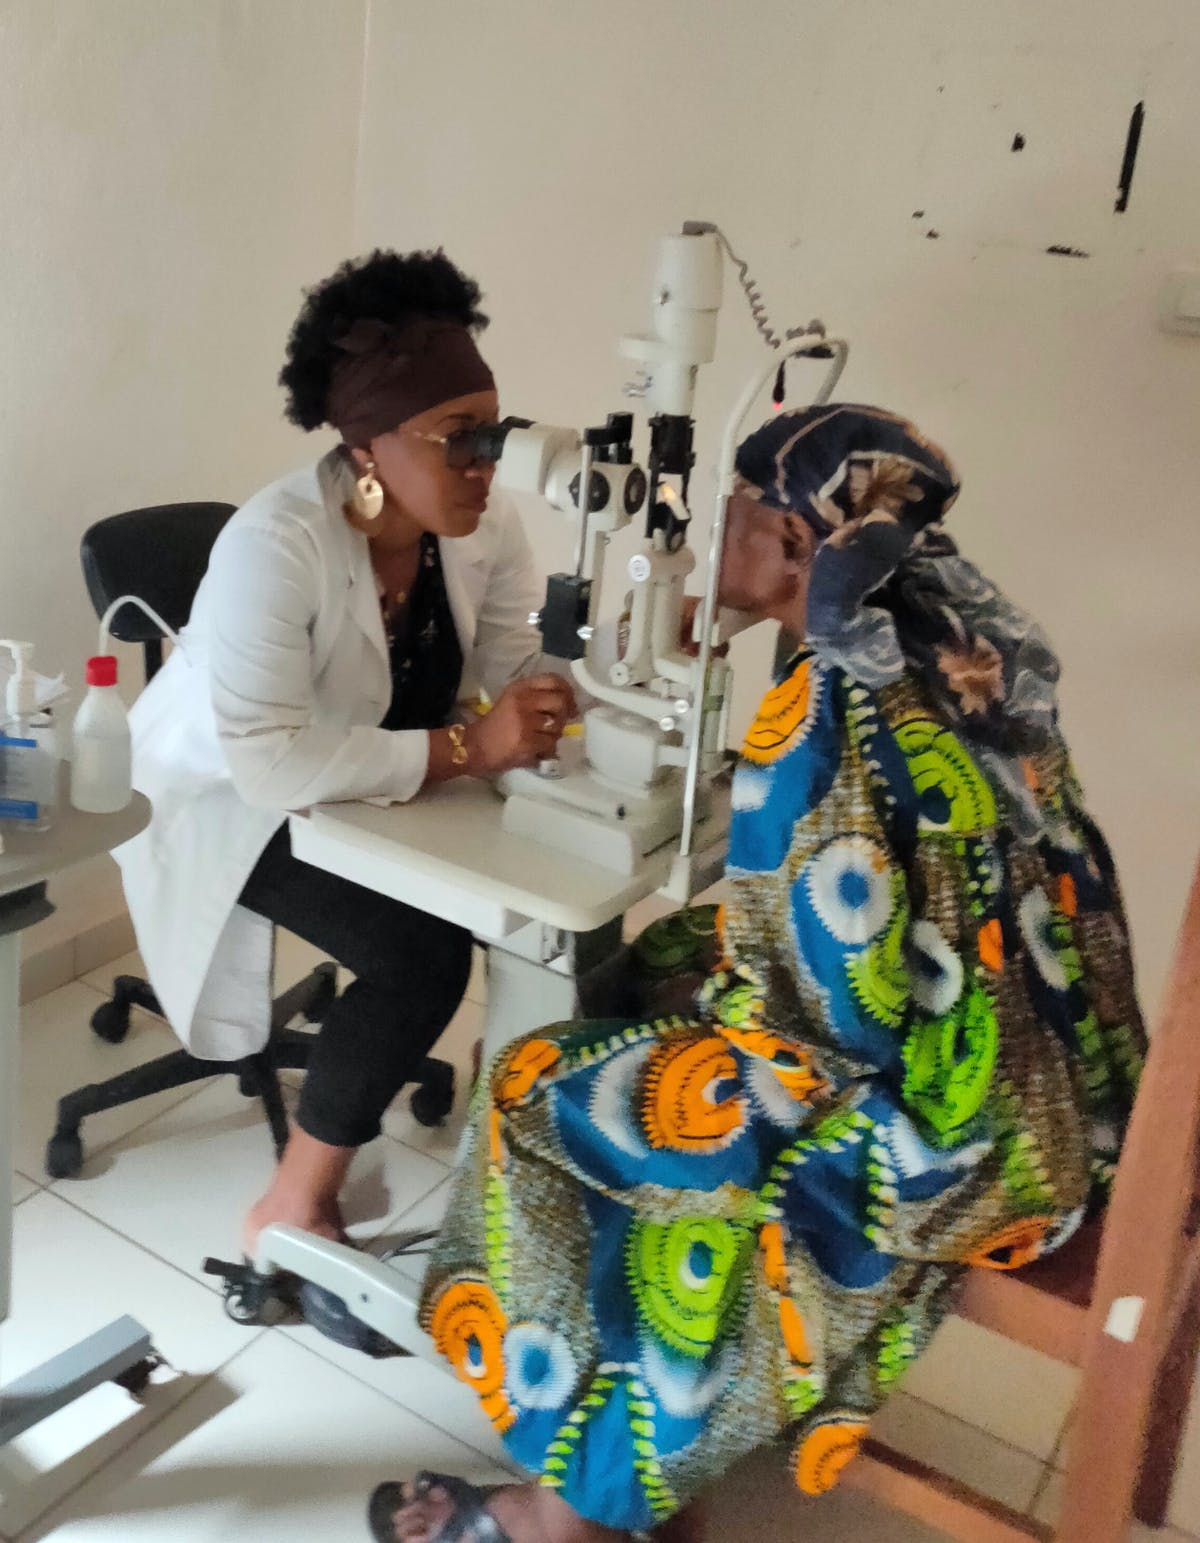 Dr Danielle Beleho is an ophthalmologist in Yaoundé, Cameroon - here she is pictured carrying out an eye examination